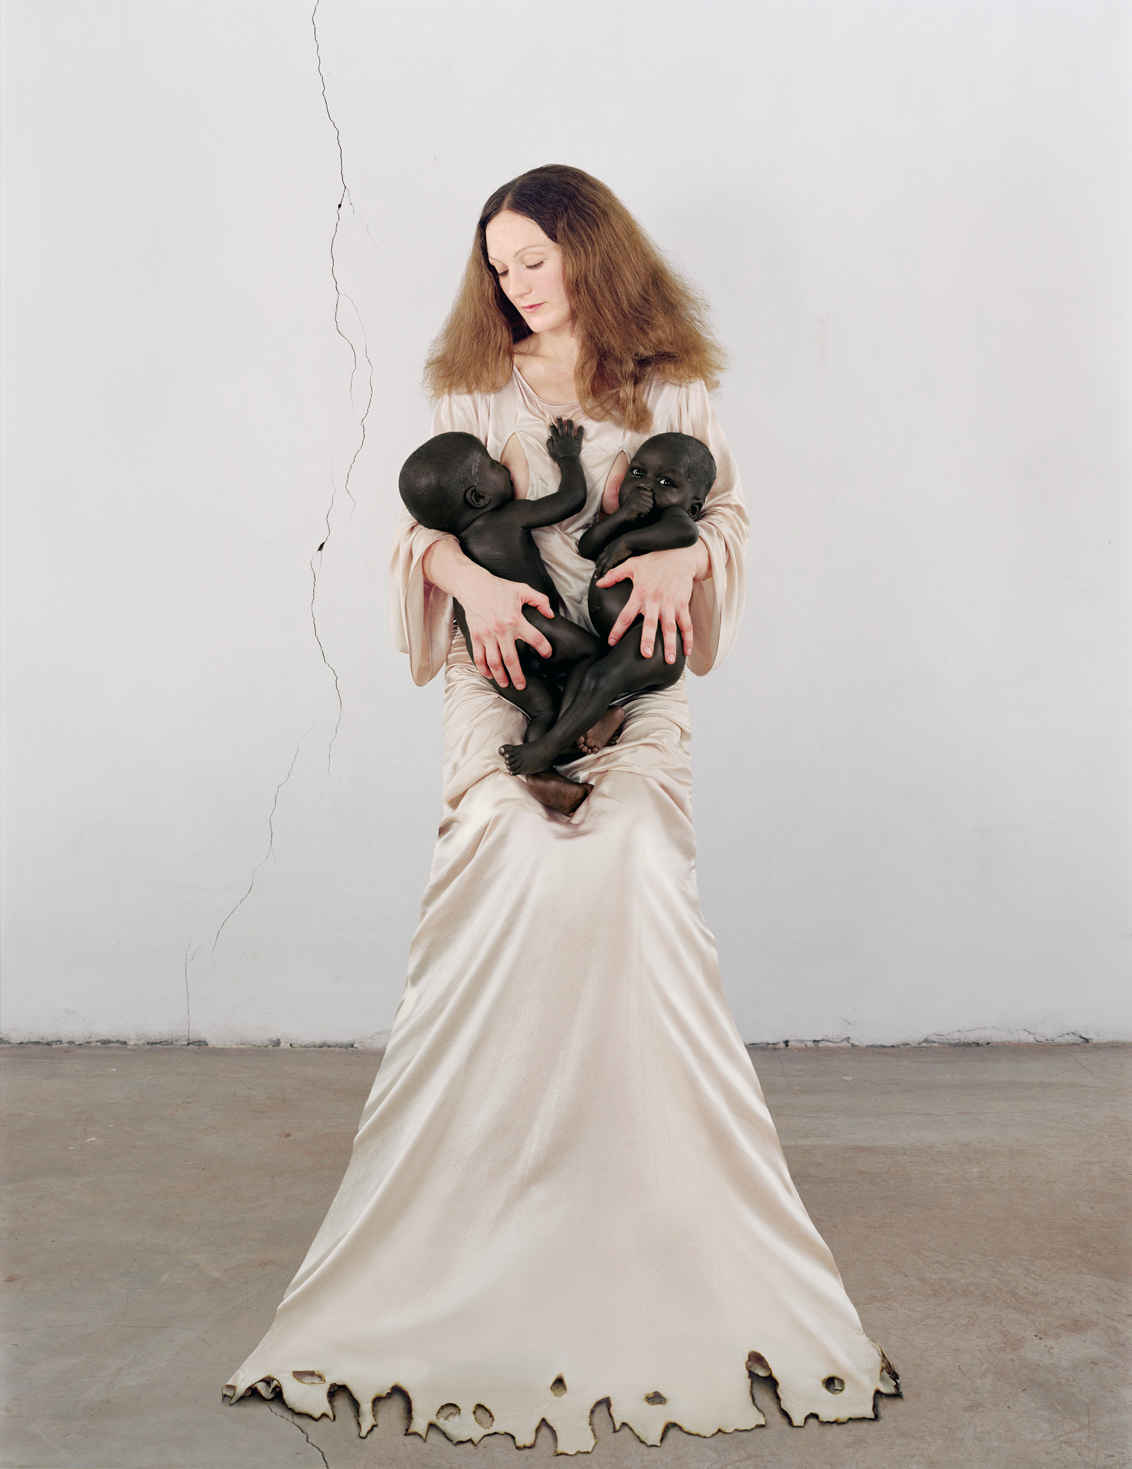 Vanessa Beecroft, VBSS - White Madonna with Twins, 2006